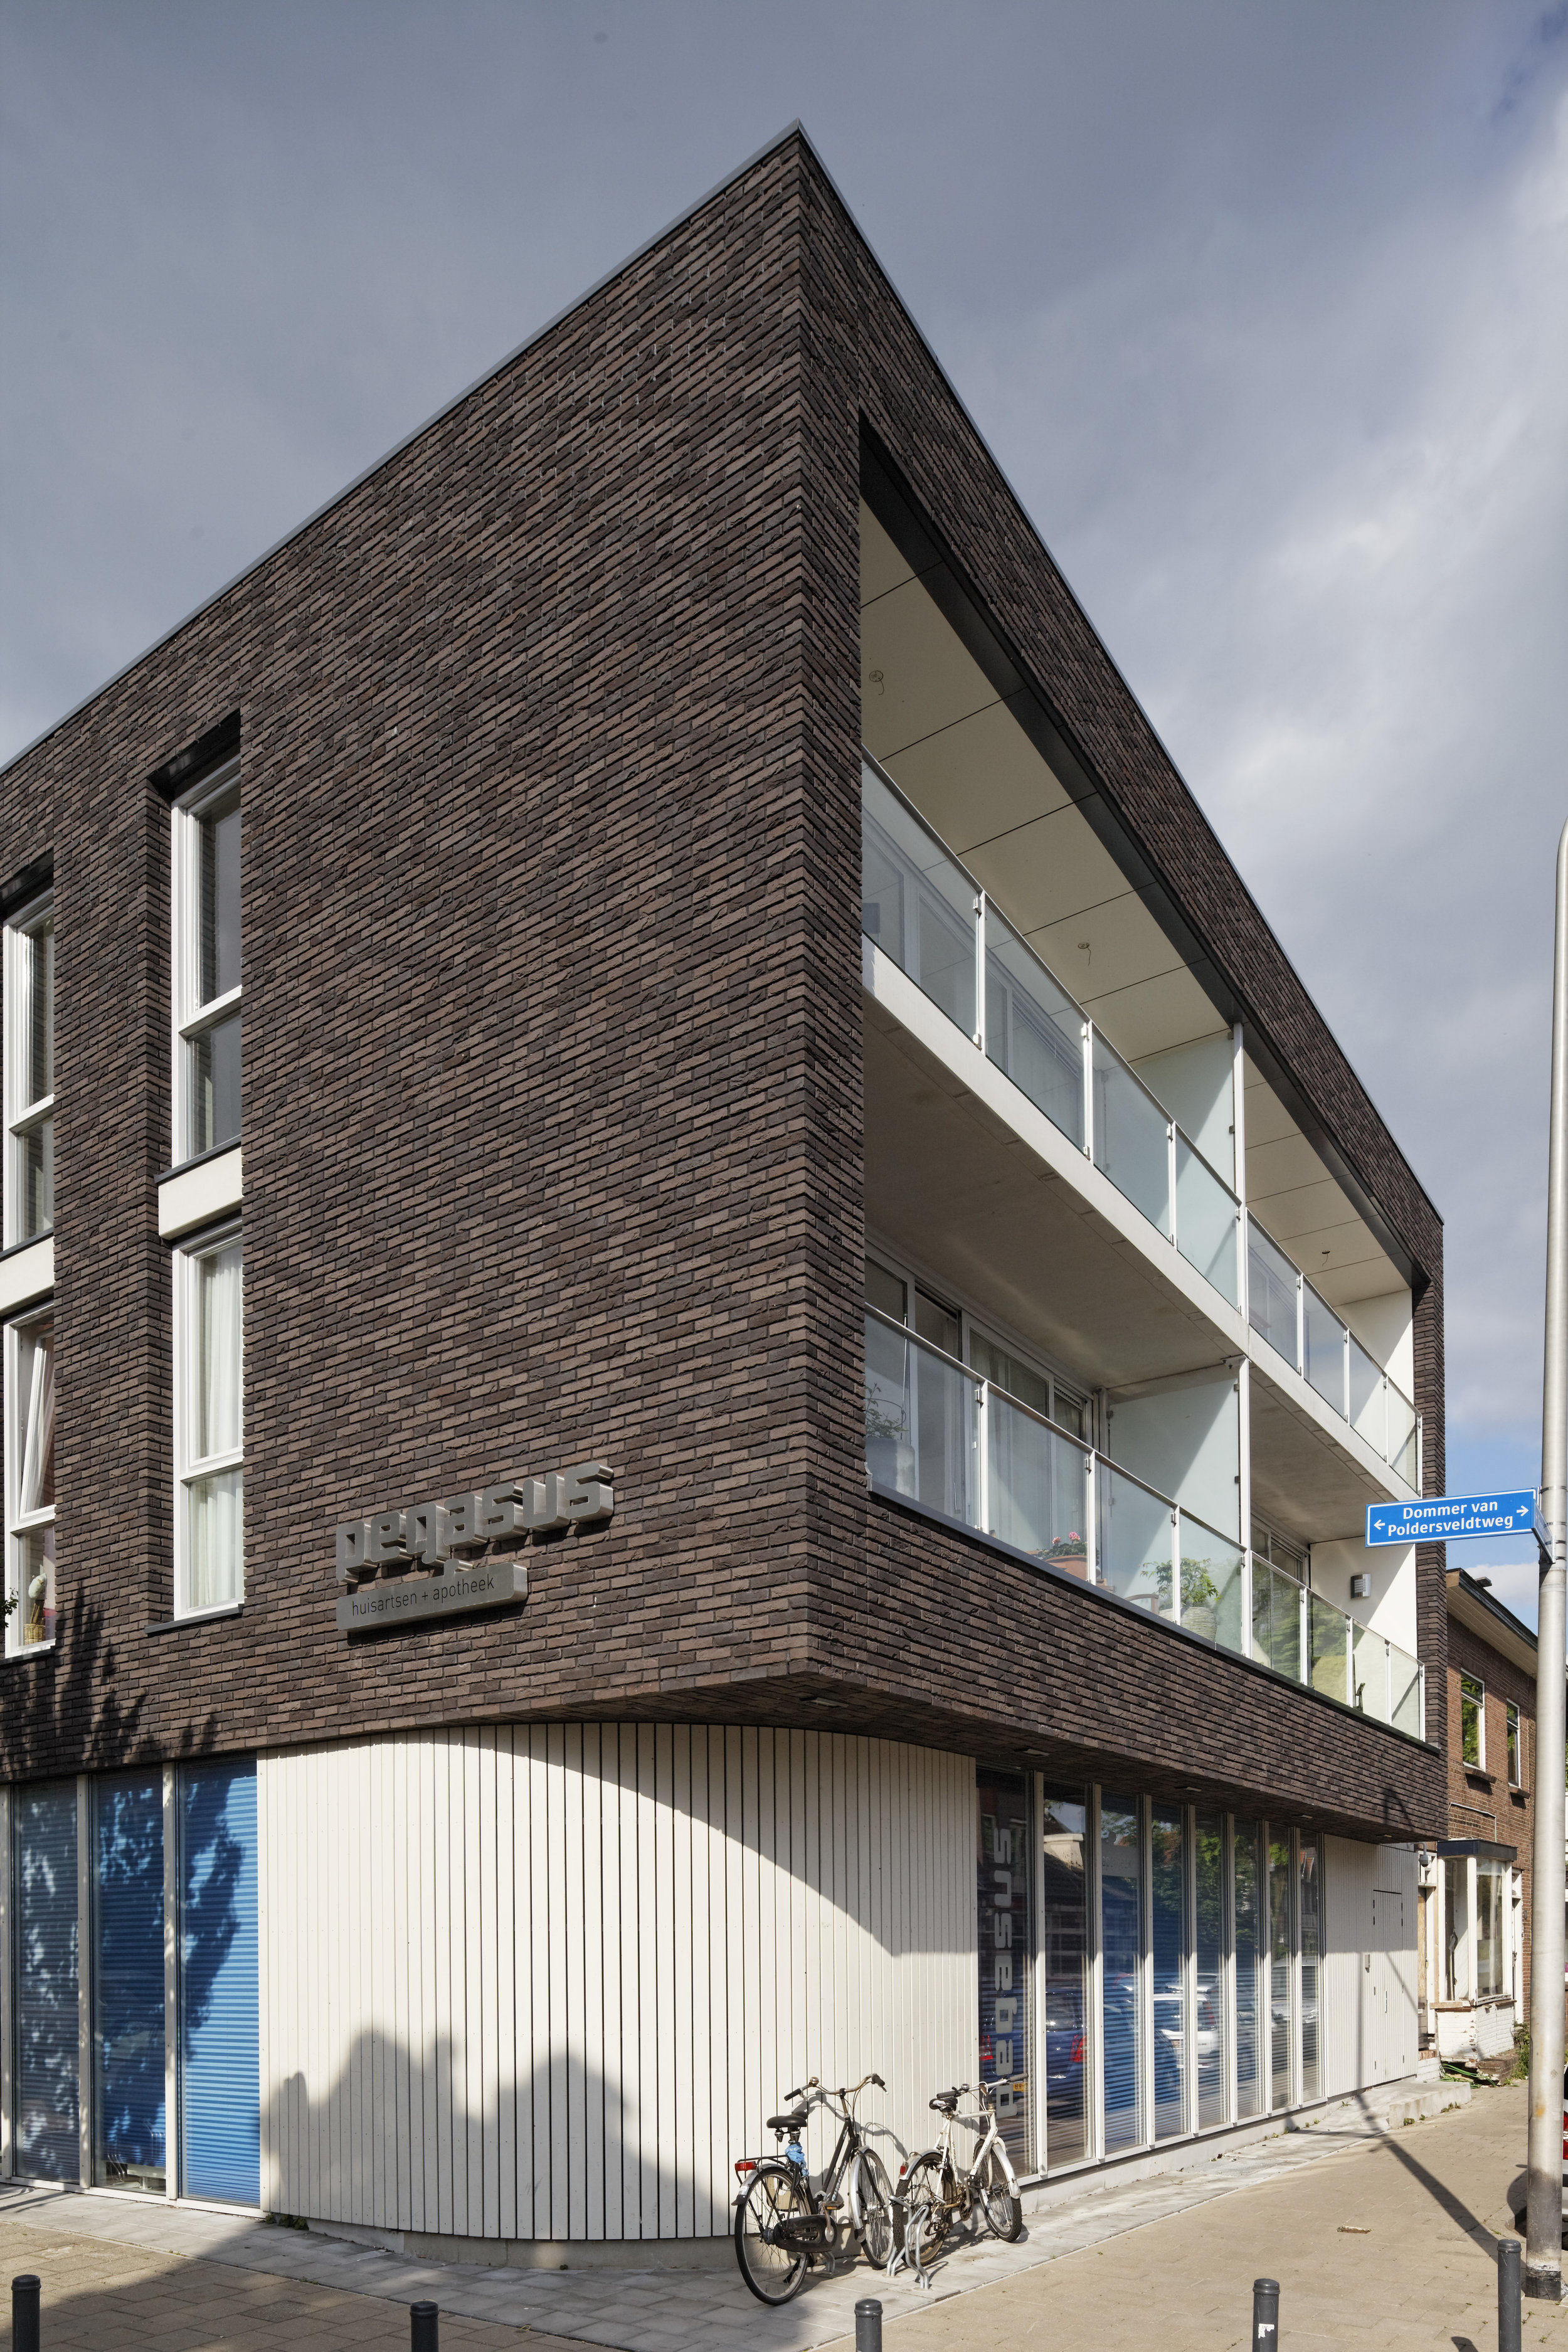 the volumes housing the apartments are clad with dark brick, accentuating the private character